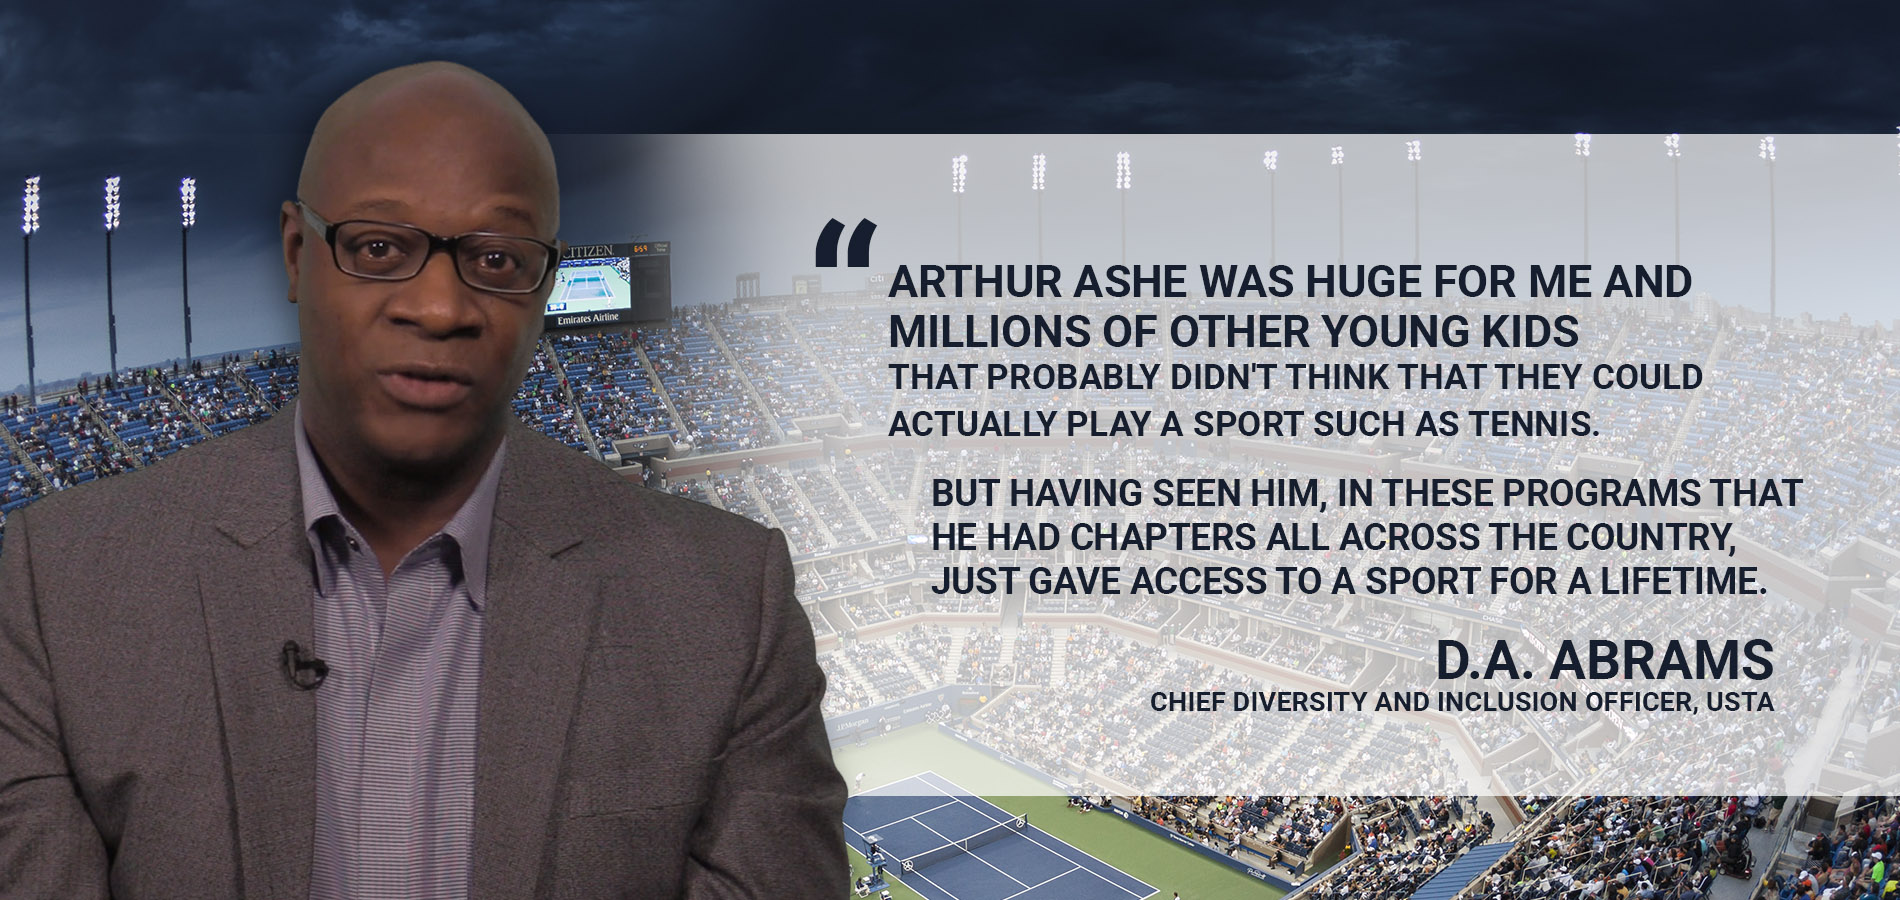 D.A. Abrams Chief Diversity and Inclusion officer USTA feels that Arthur Ashe playing tennis changed his life